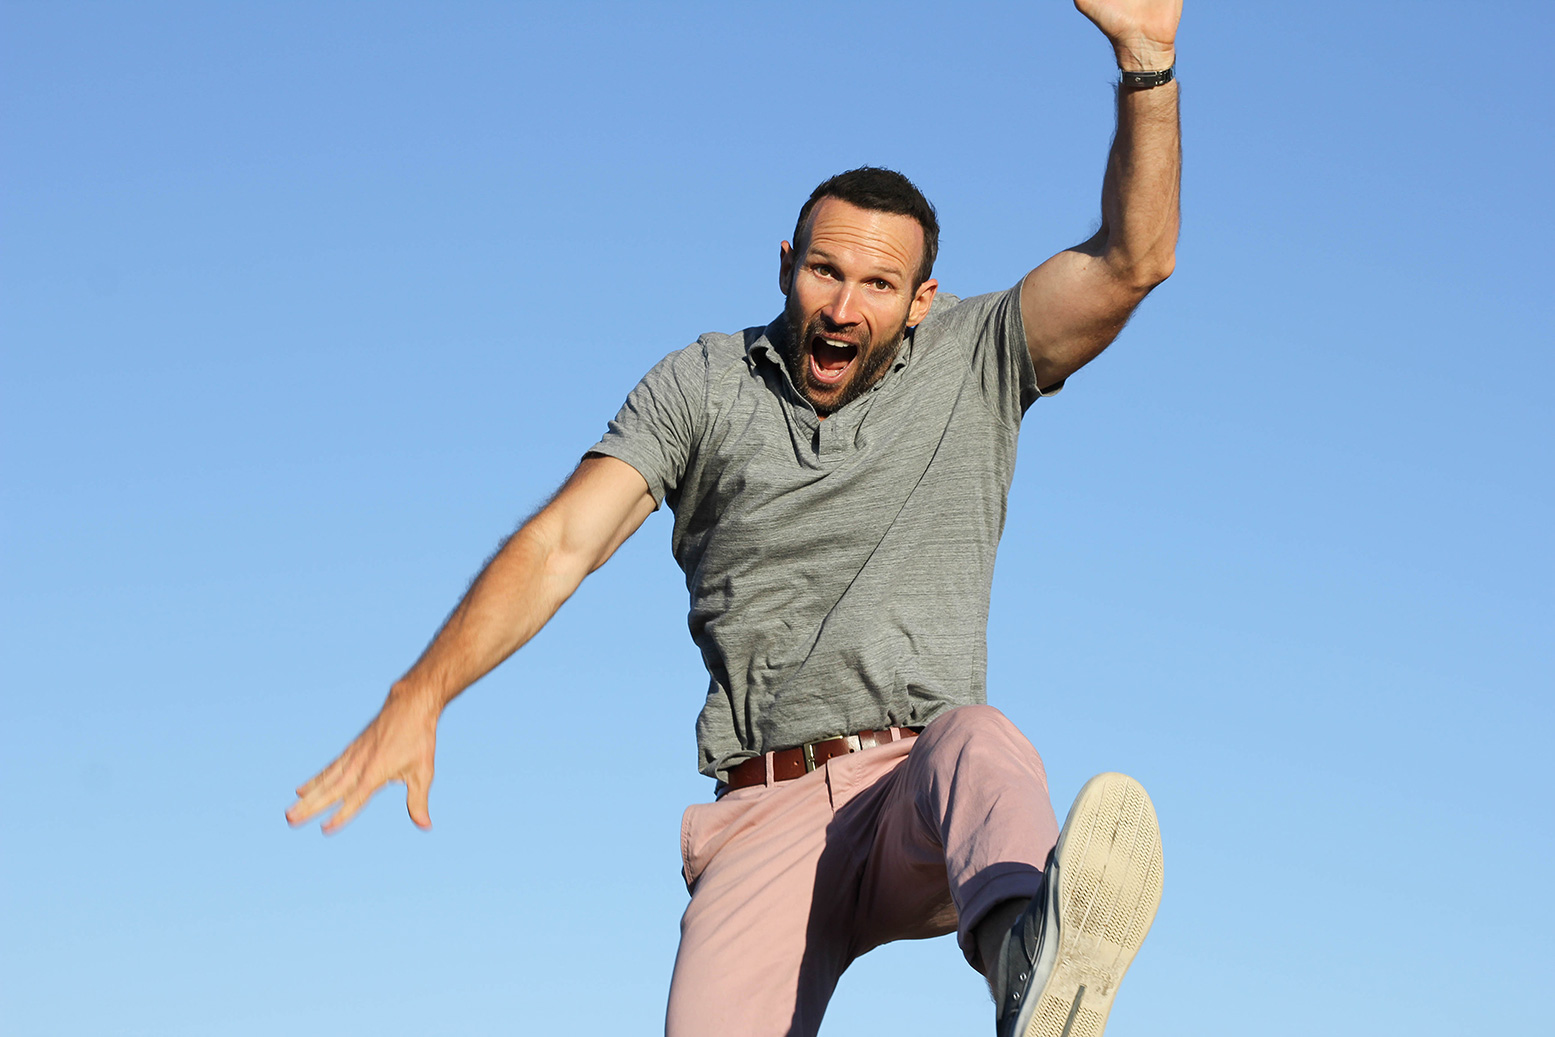 james-swanwick-habit-hacks